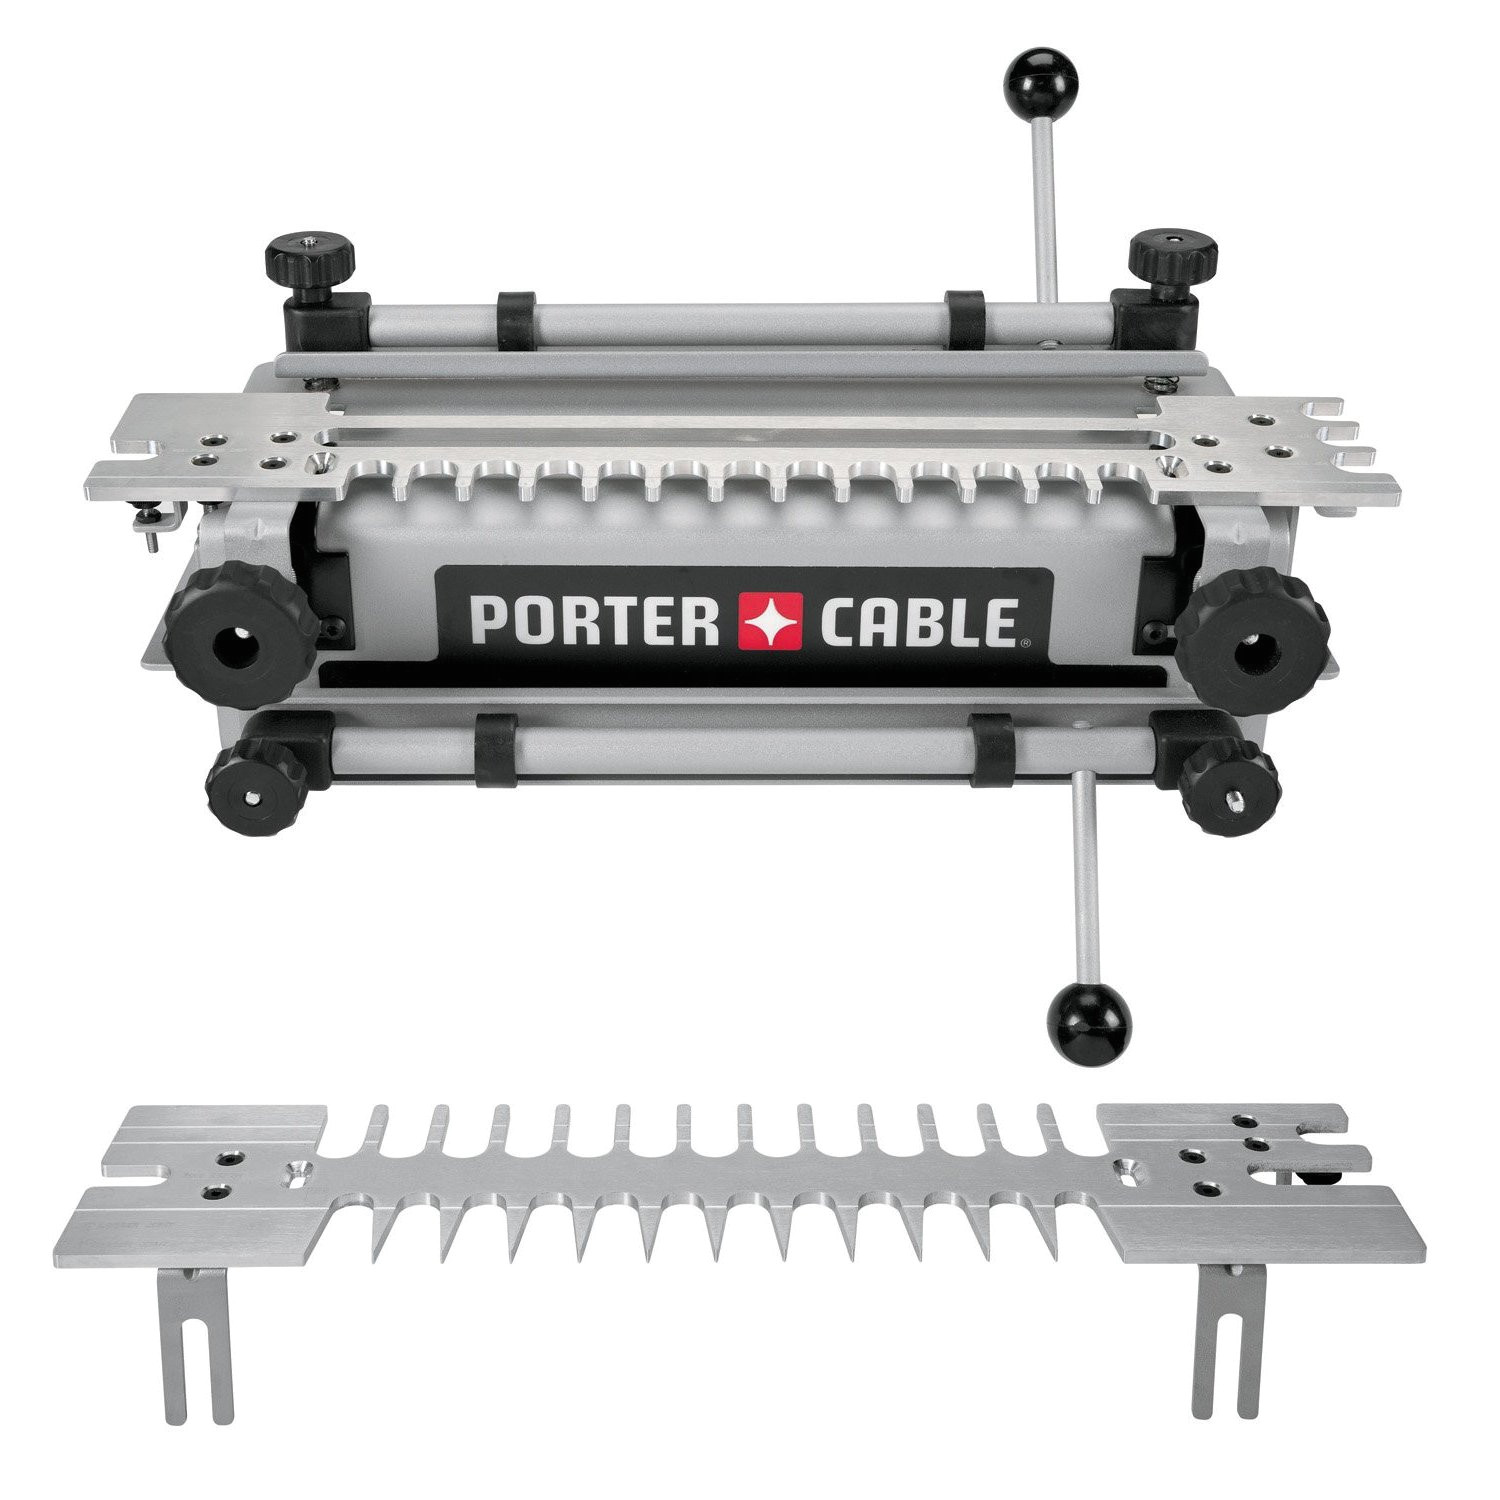 porter cable 4212 dovetail jig review